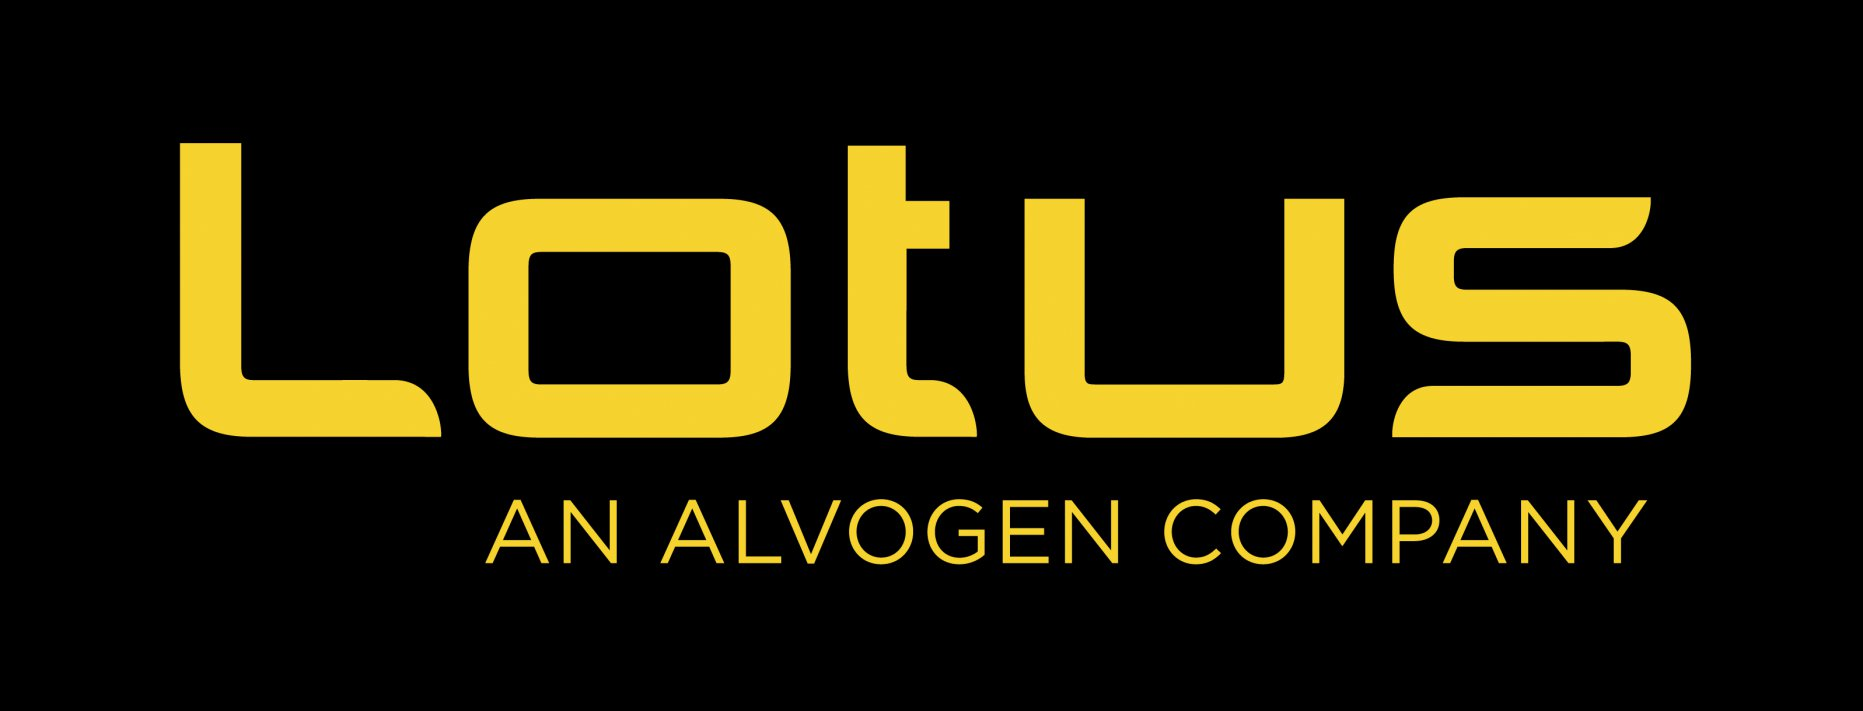 Alvogen - Lotus Pharmaceutical logo